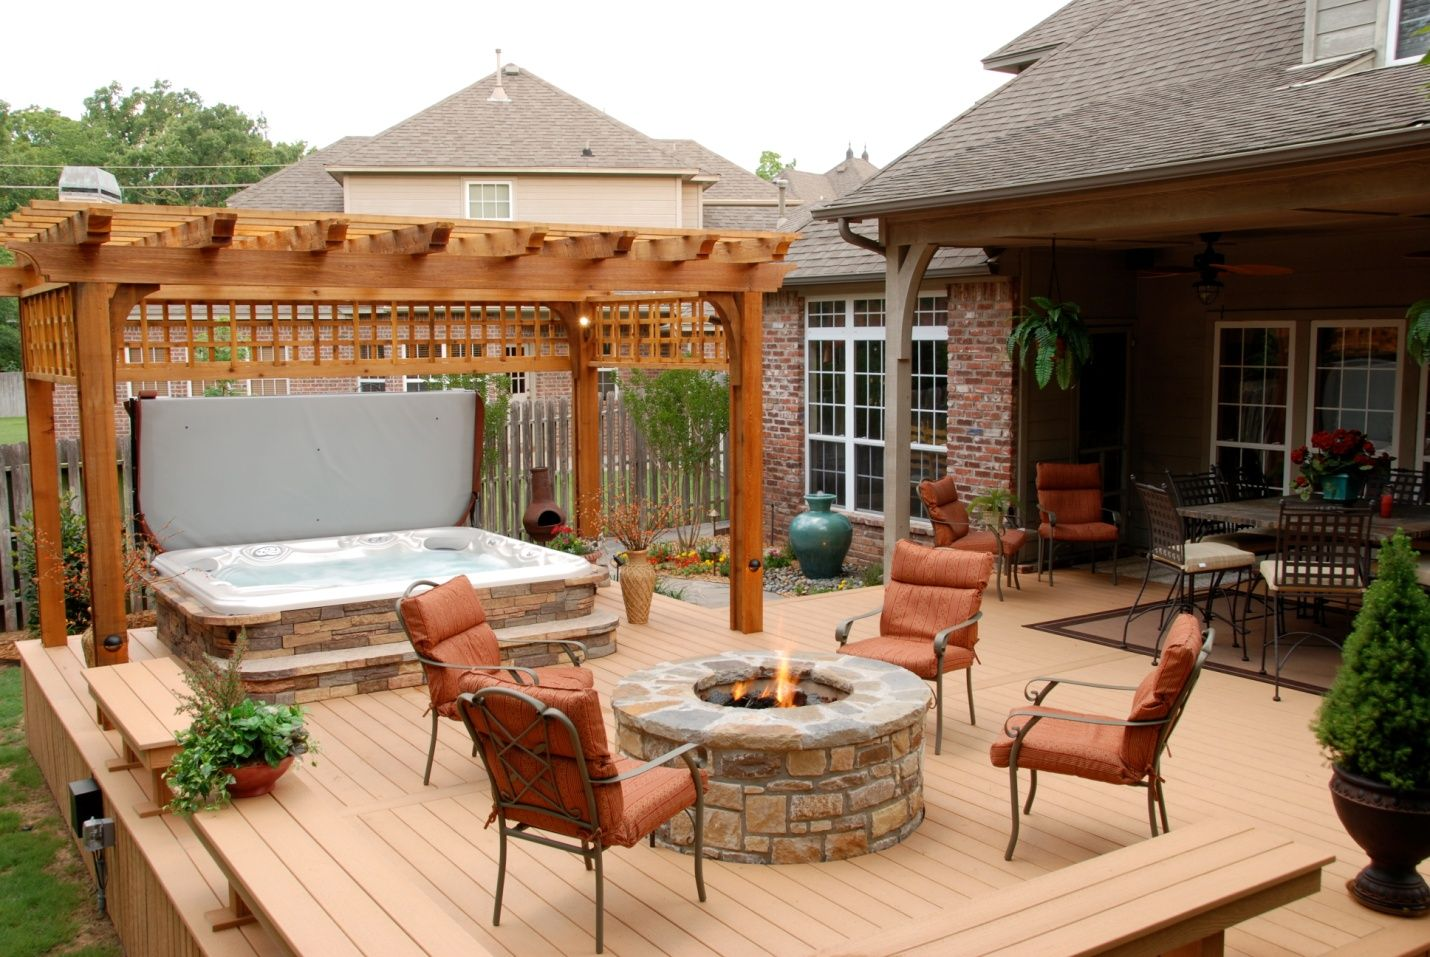 hot tub and stone firepit on deck  like the pergola